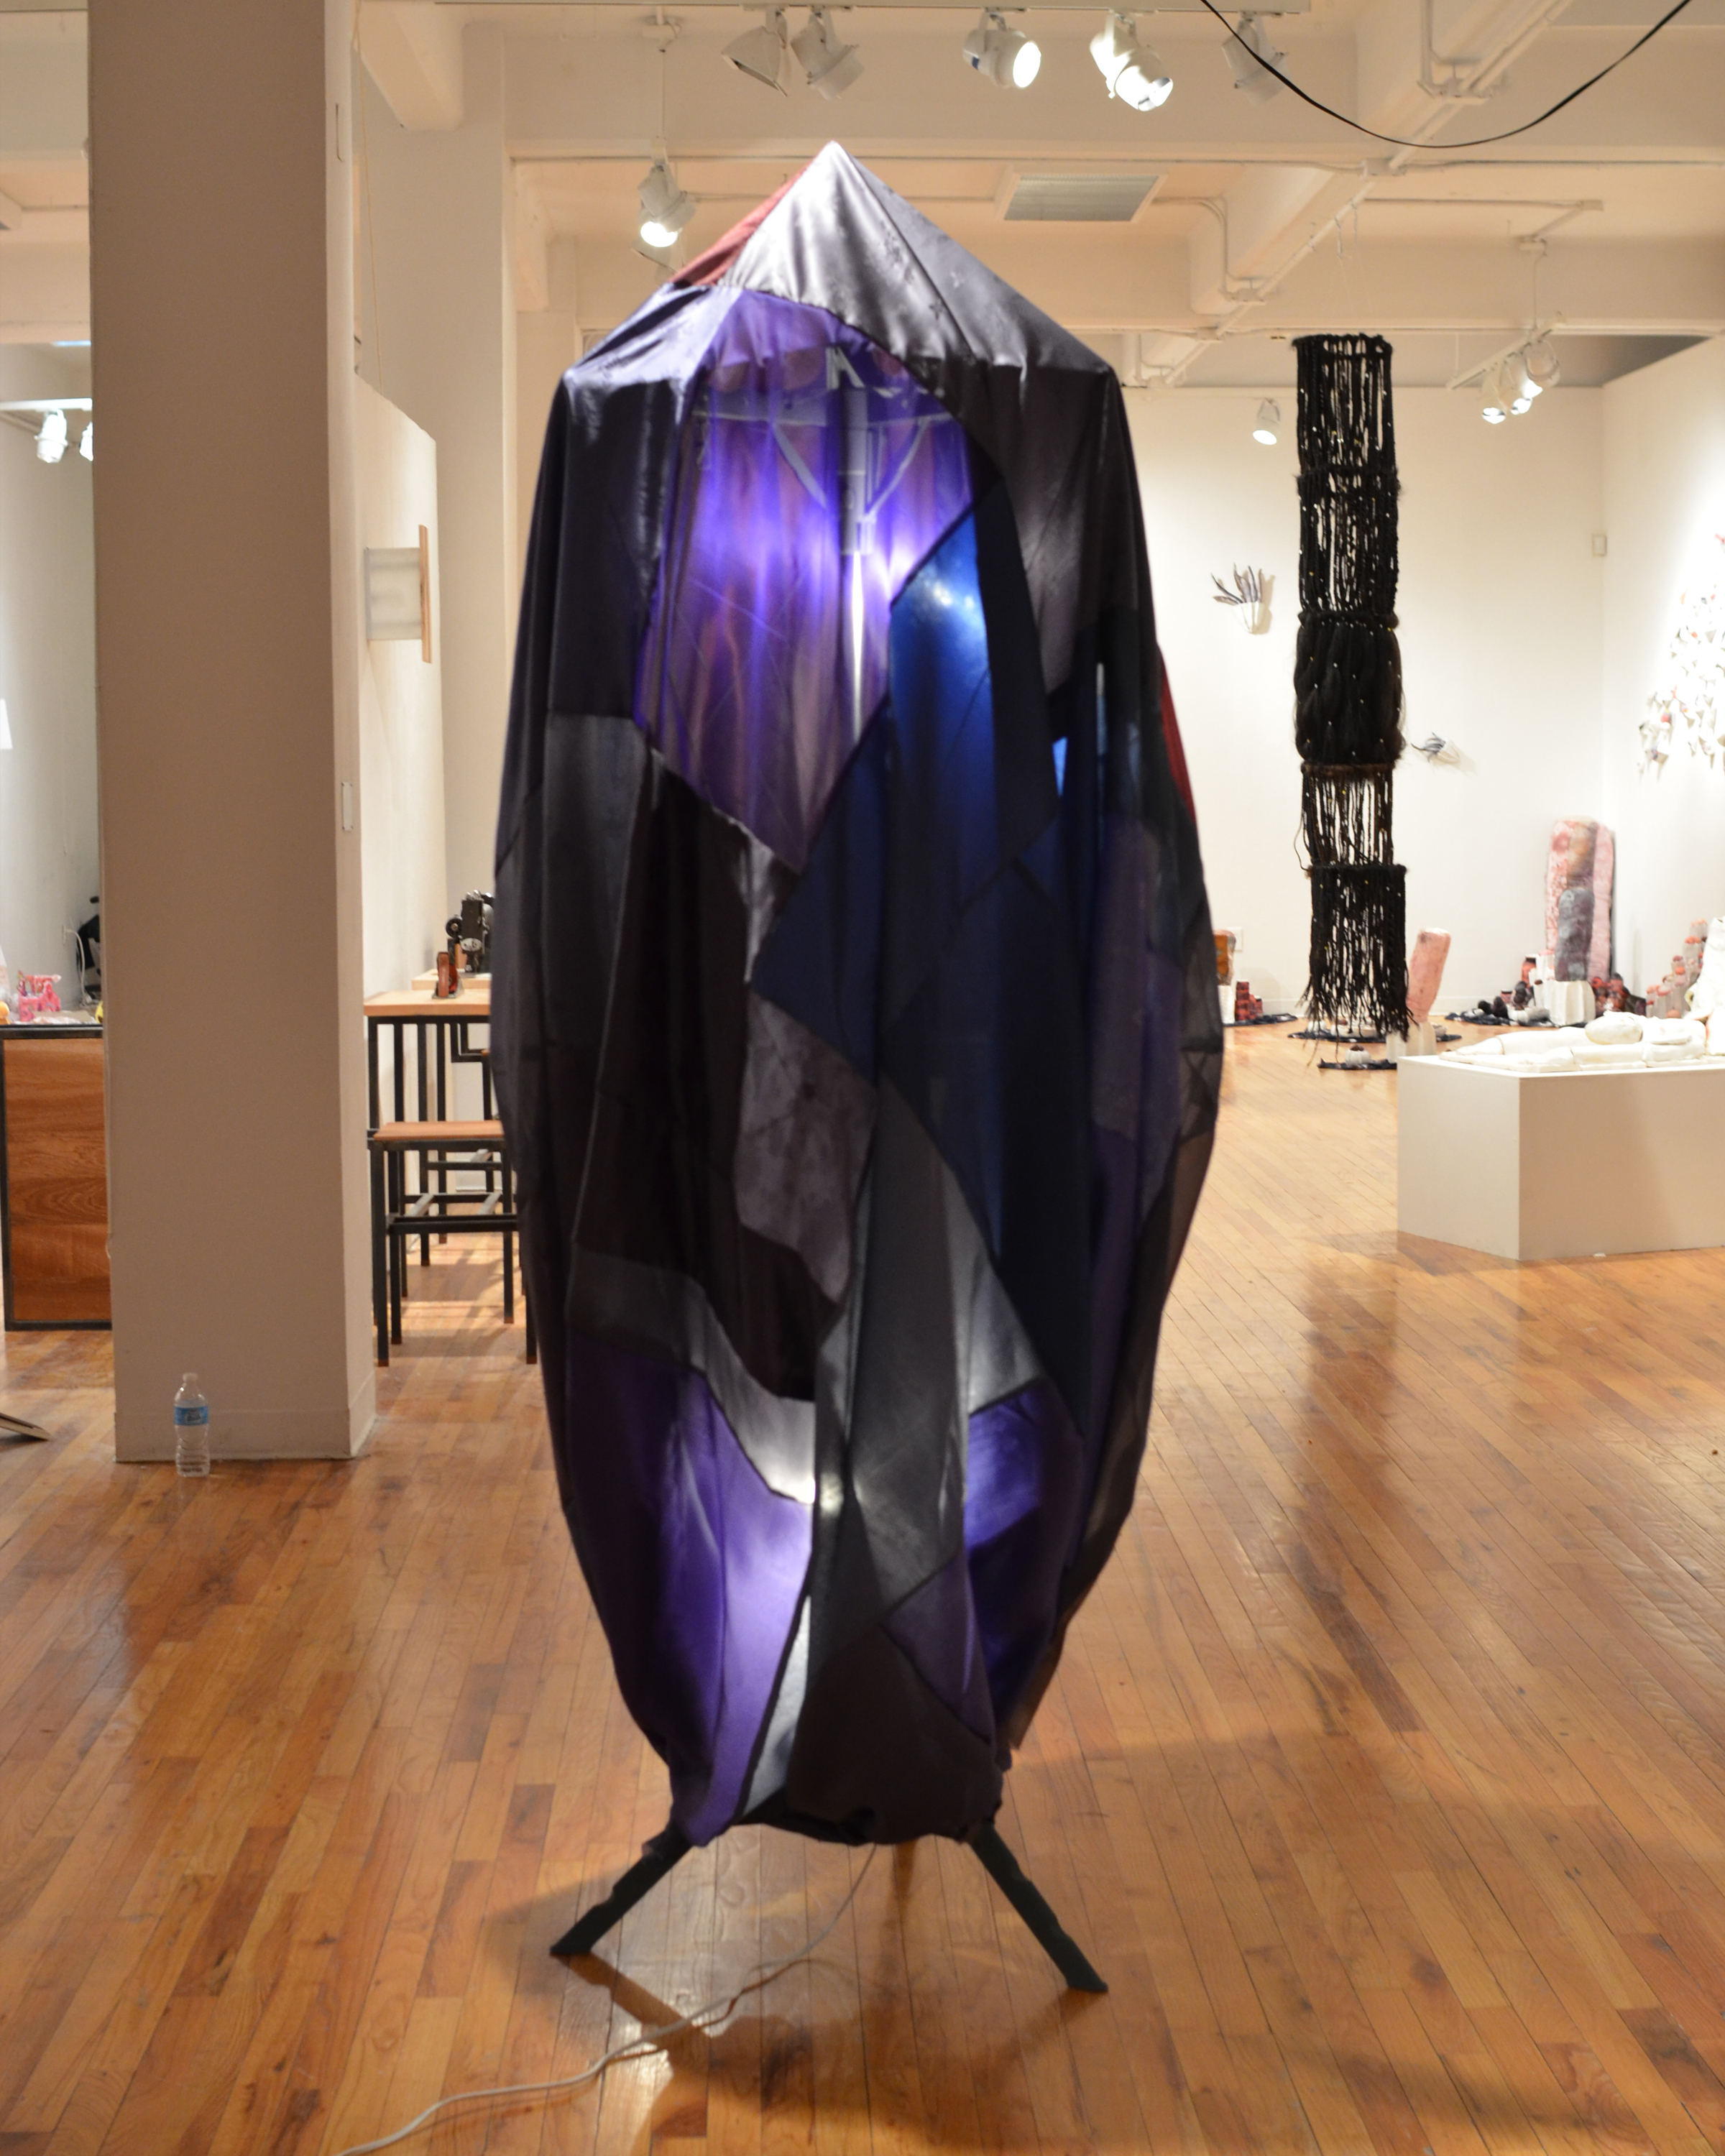 Lee_Joo Young_2_Shaman the Hardest Night_Leftover Hanbok (traditional Korean garment) fabric, drying rack, string, wire, spray paint, metal, light_6x2x2 feet_Sculpture_2014.jpg